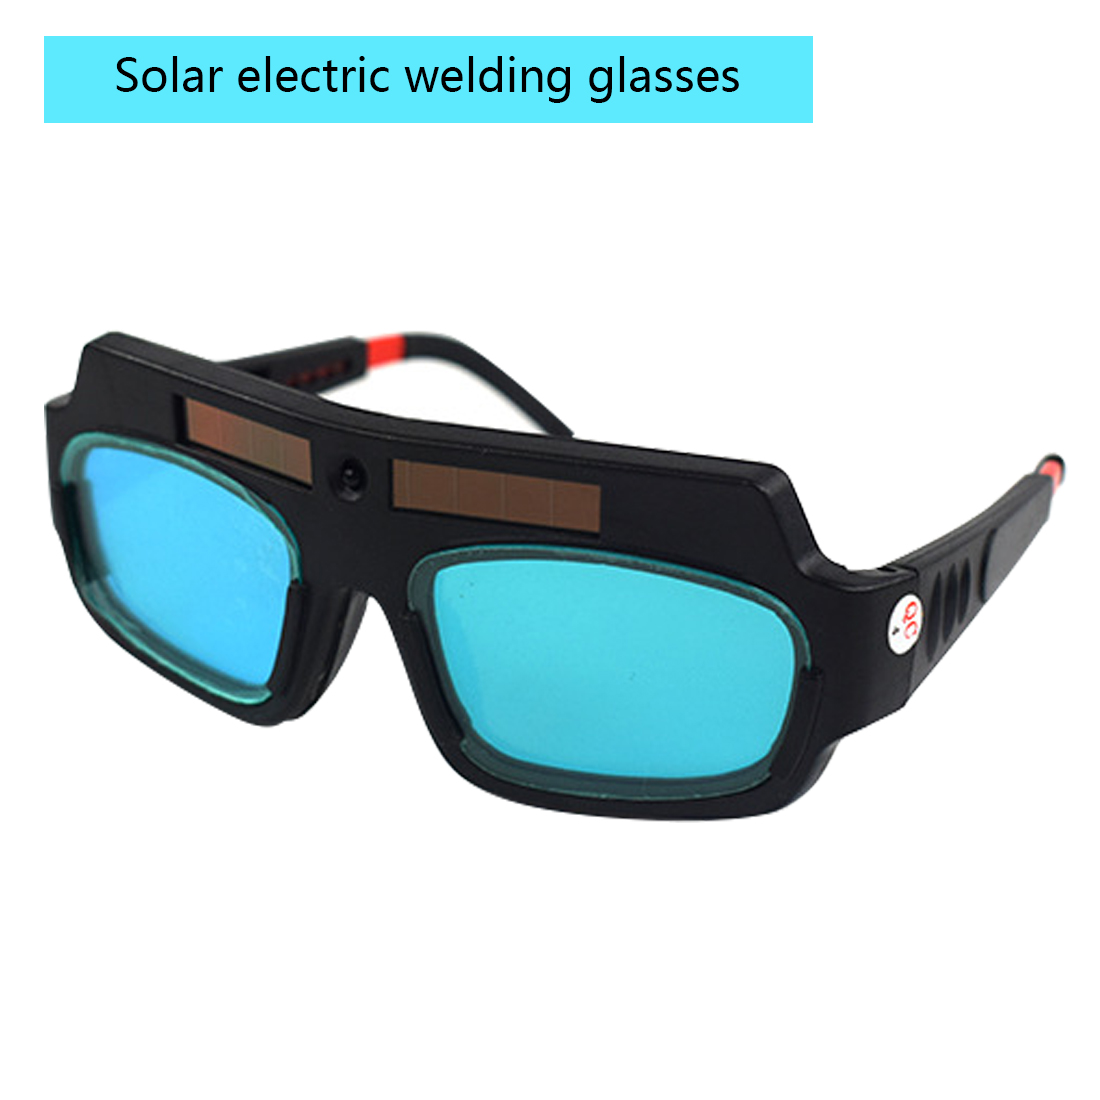 Argon Arc Welding Glasses 1pc Solar Powered Auto Darkening Welding Helmet Mask Welding Glass Welding Glasses